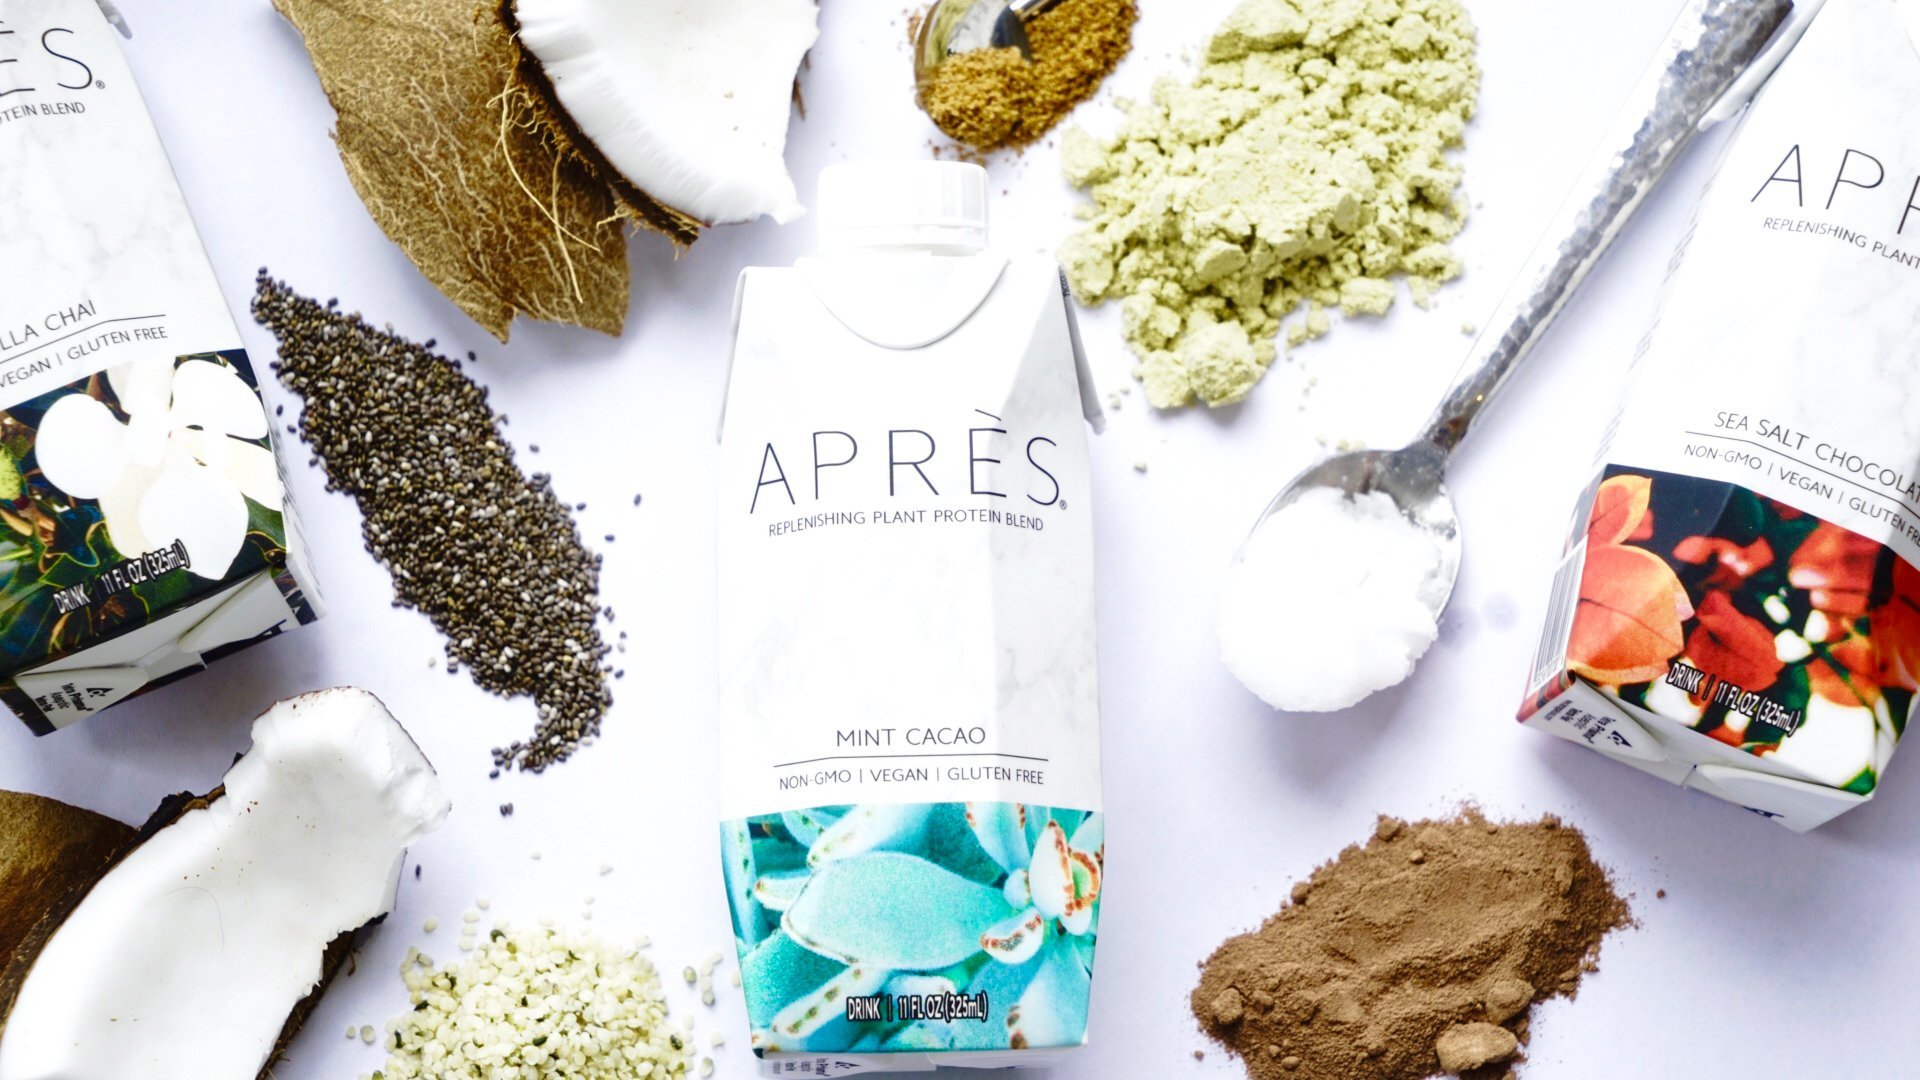 With pretty packaging, organic ingredients, and scrumptious flavors (mint cacao, sea salt chocolate, and chai spiced vanilla), Après will change the way you think about protein shakes